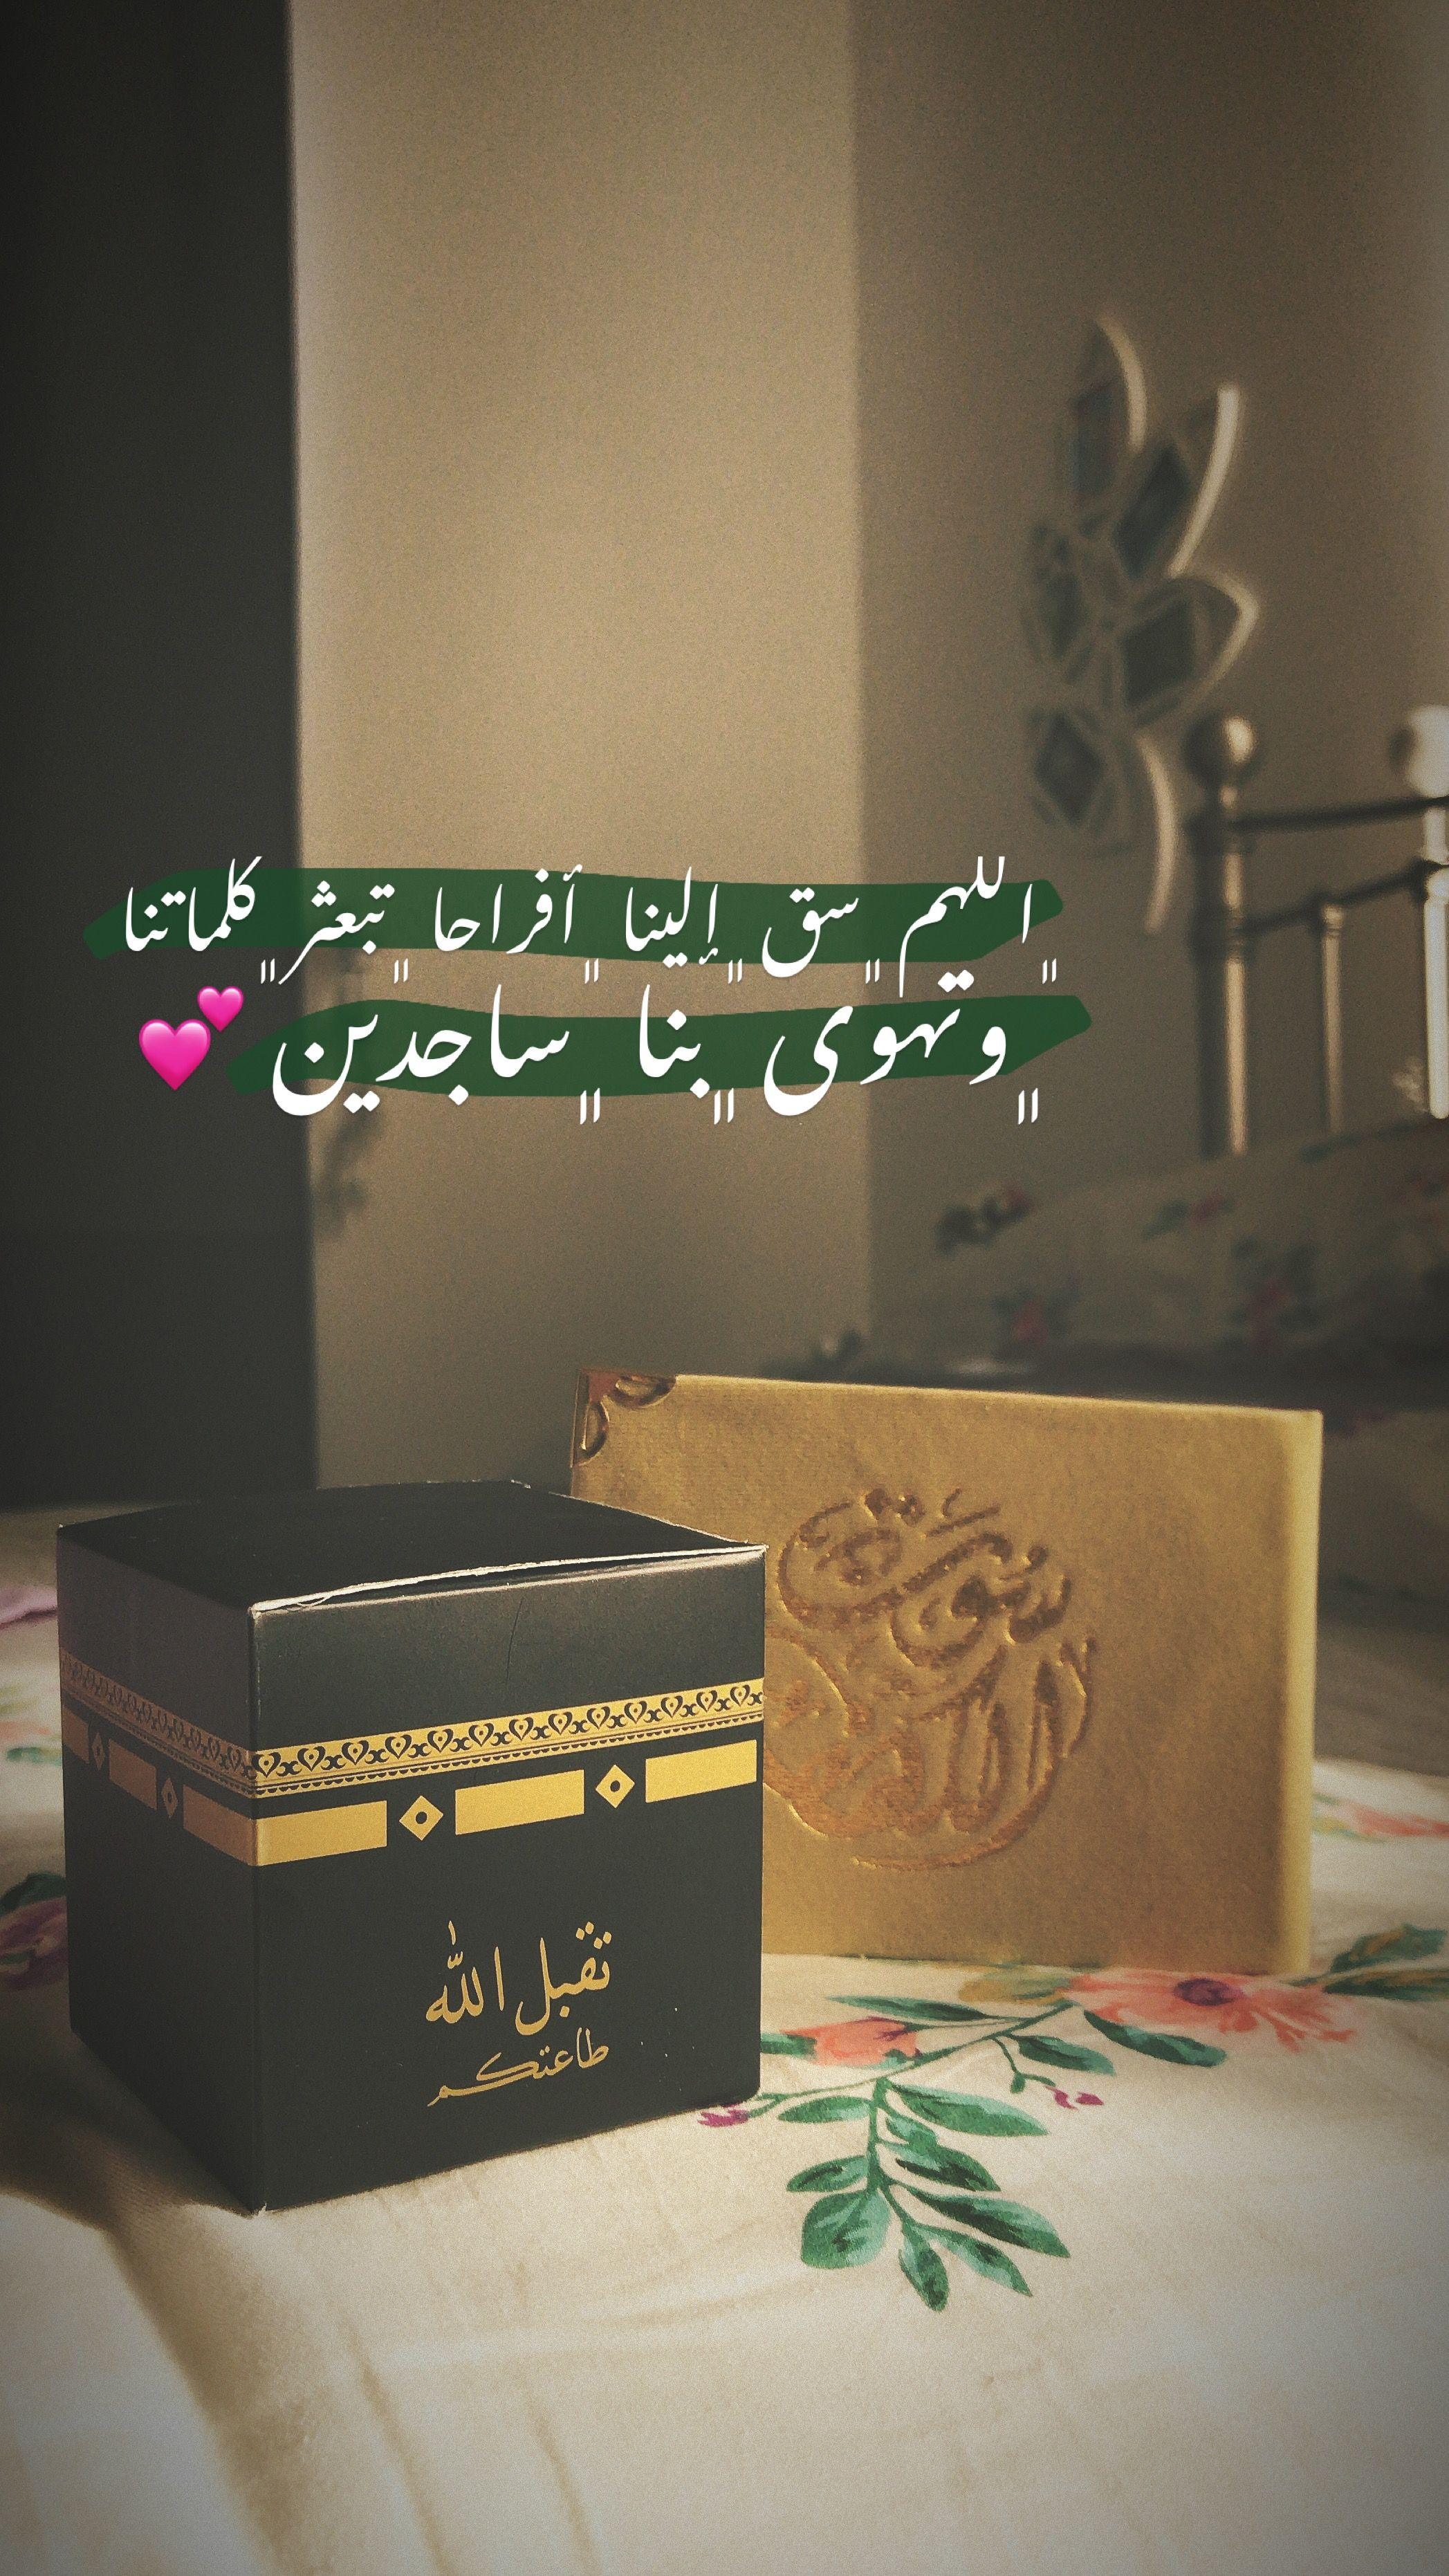 Pin By Mahmoud Yhia On All Pictures From My Diary In Snapchat Quran Quotes Islamic Pictures Ramadan